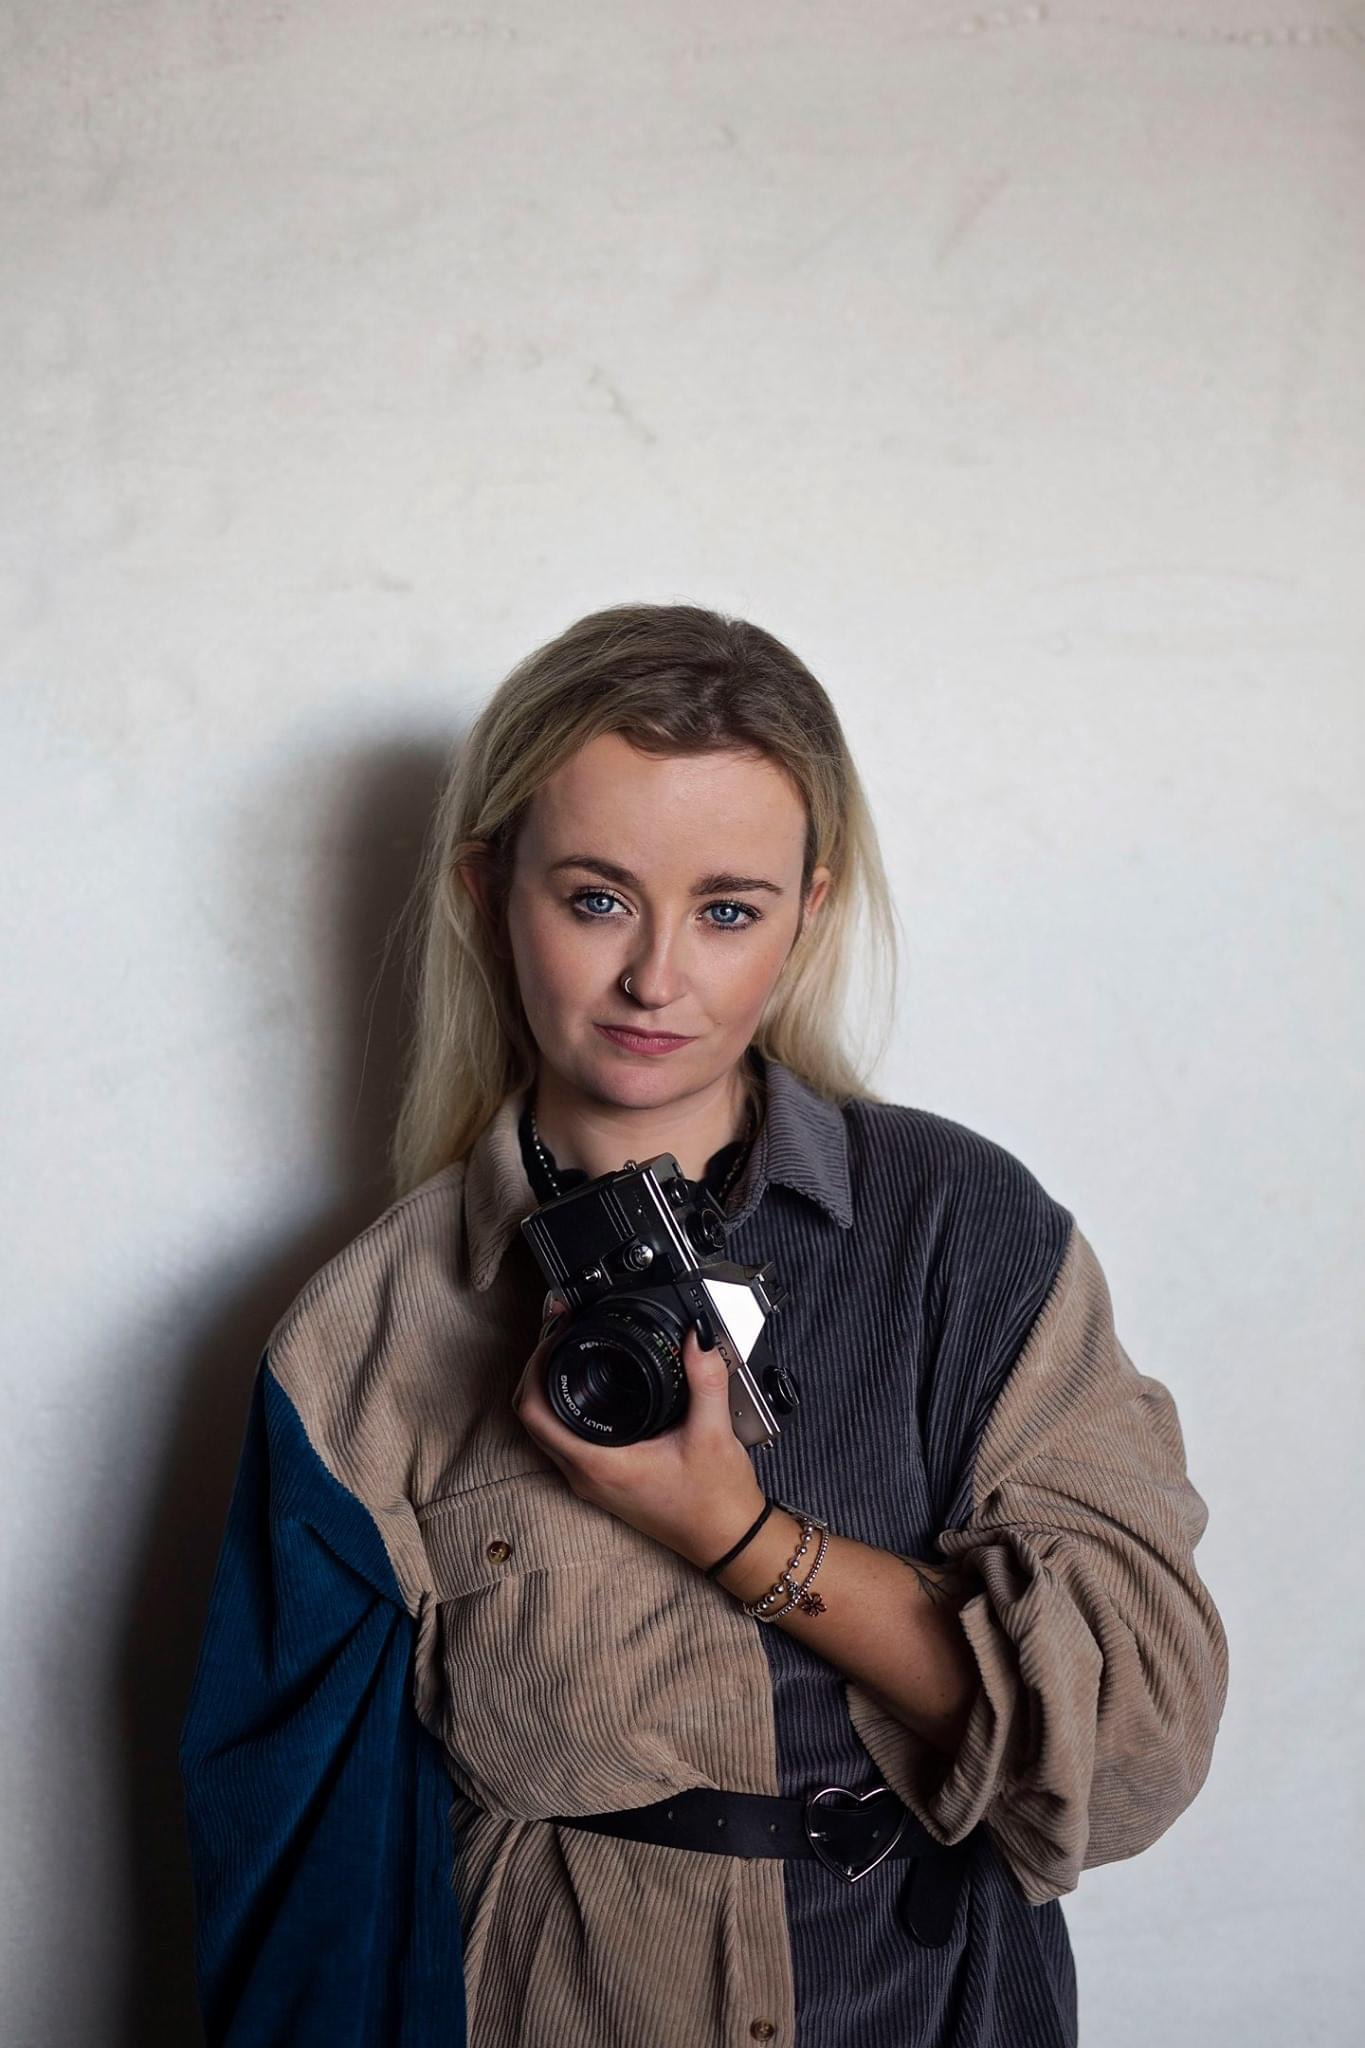 A phtograph of Katie wearing a coat with a camera in hand